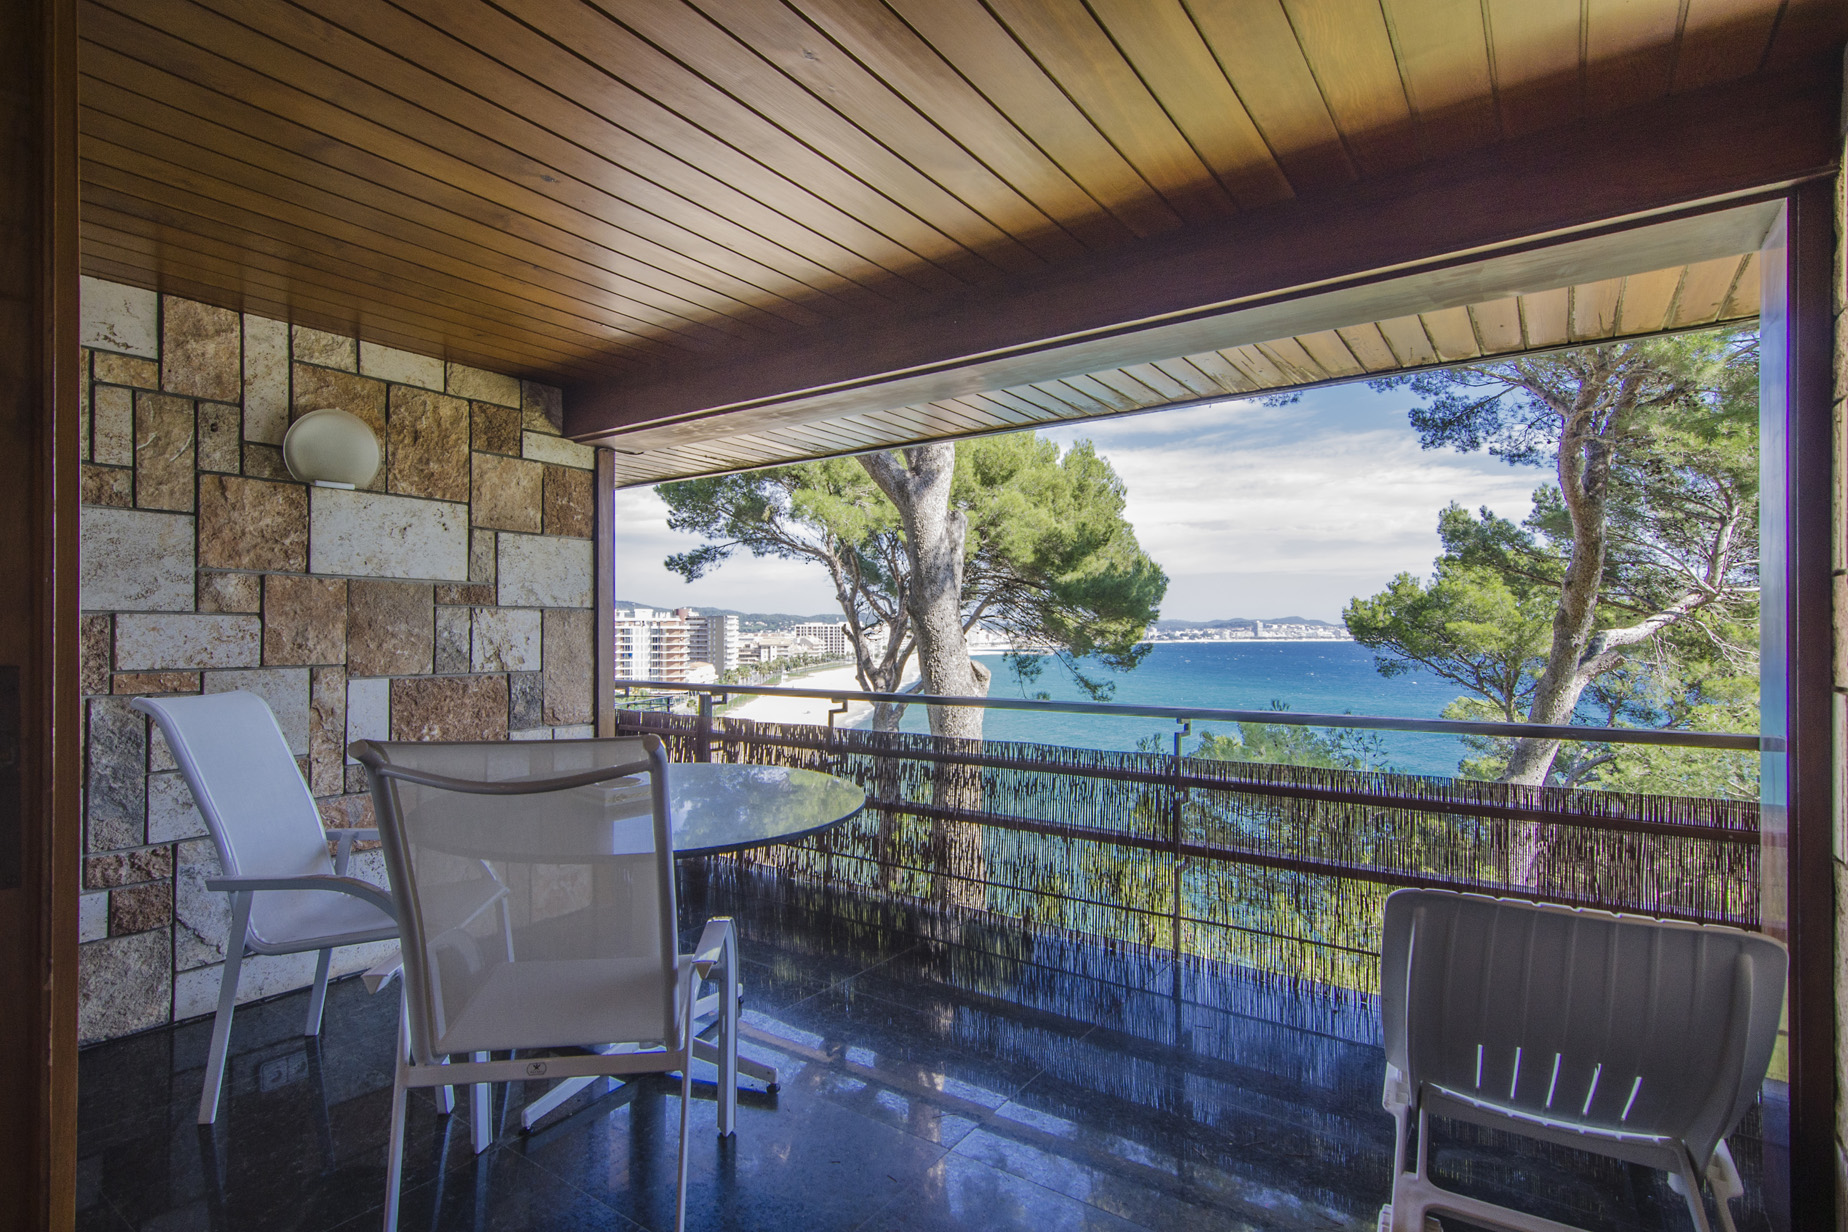 Apartment for Sale at Apartment with sea views in Torre Valentina Torrevalentina, Barcelona, 17252 Spain